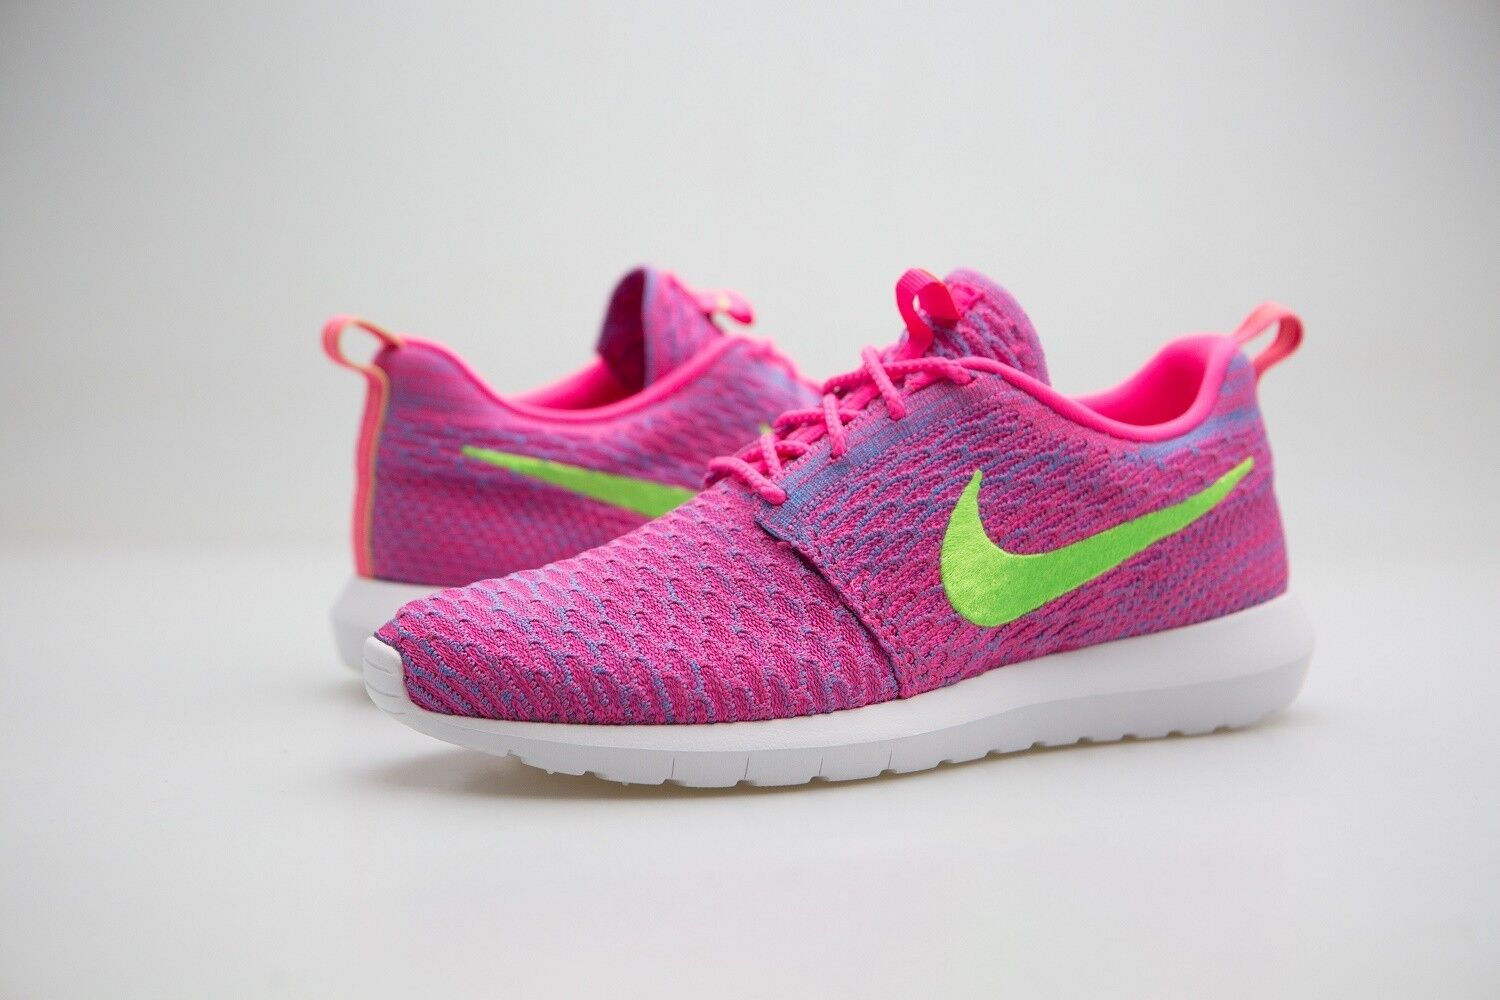 677243-601 Nike Men Flyknit Roshe Run pink blueee neon